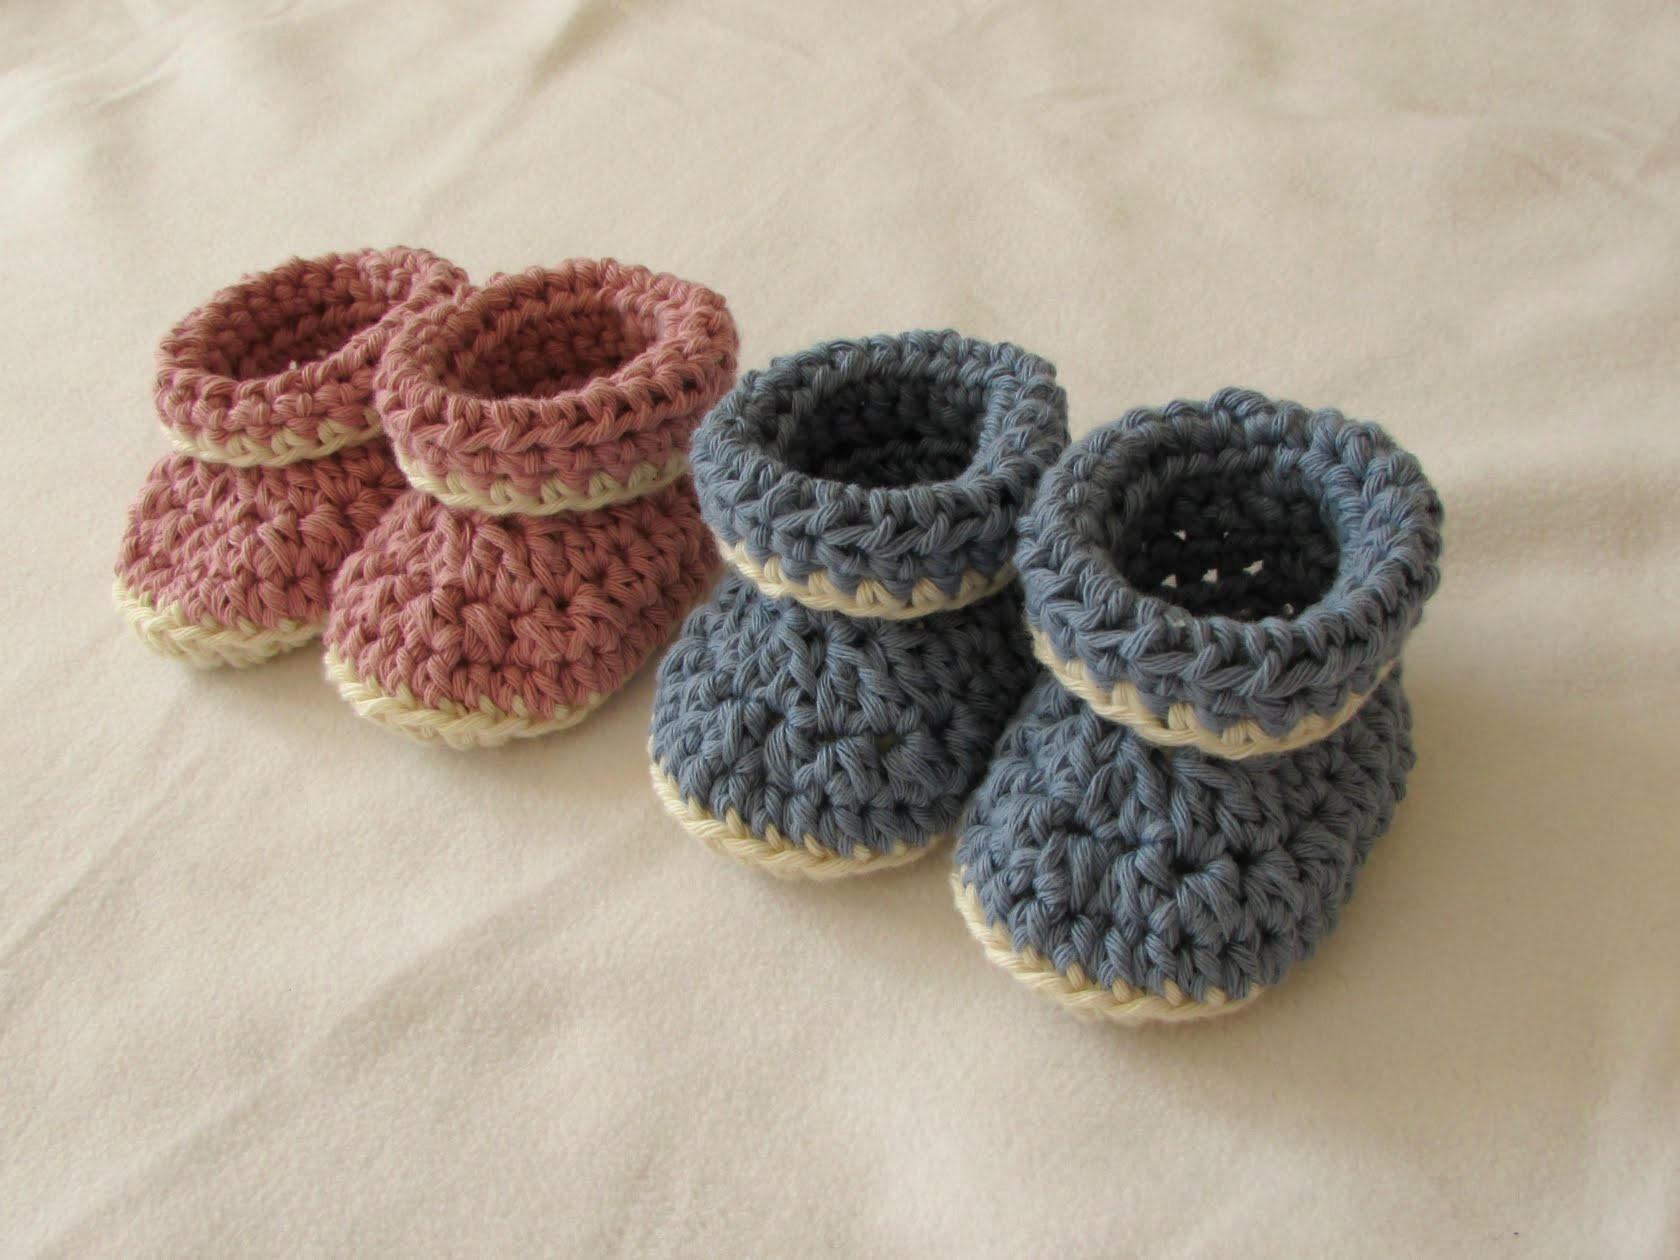 Baby Crochet Patterns Best Of 36 Easy & Free Crochet Baby Booties Patterns for Your Angel Of Fresh 41 Ideas Baby Crochet Patterns